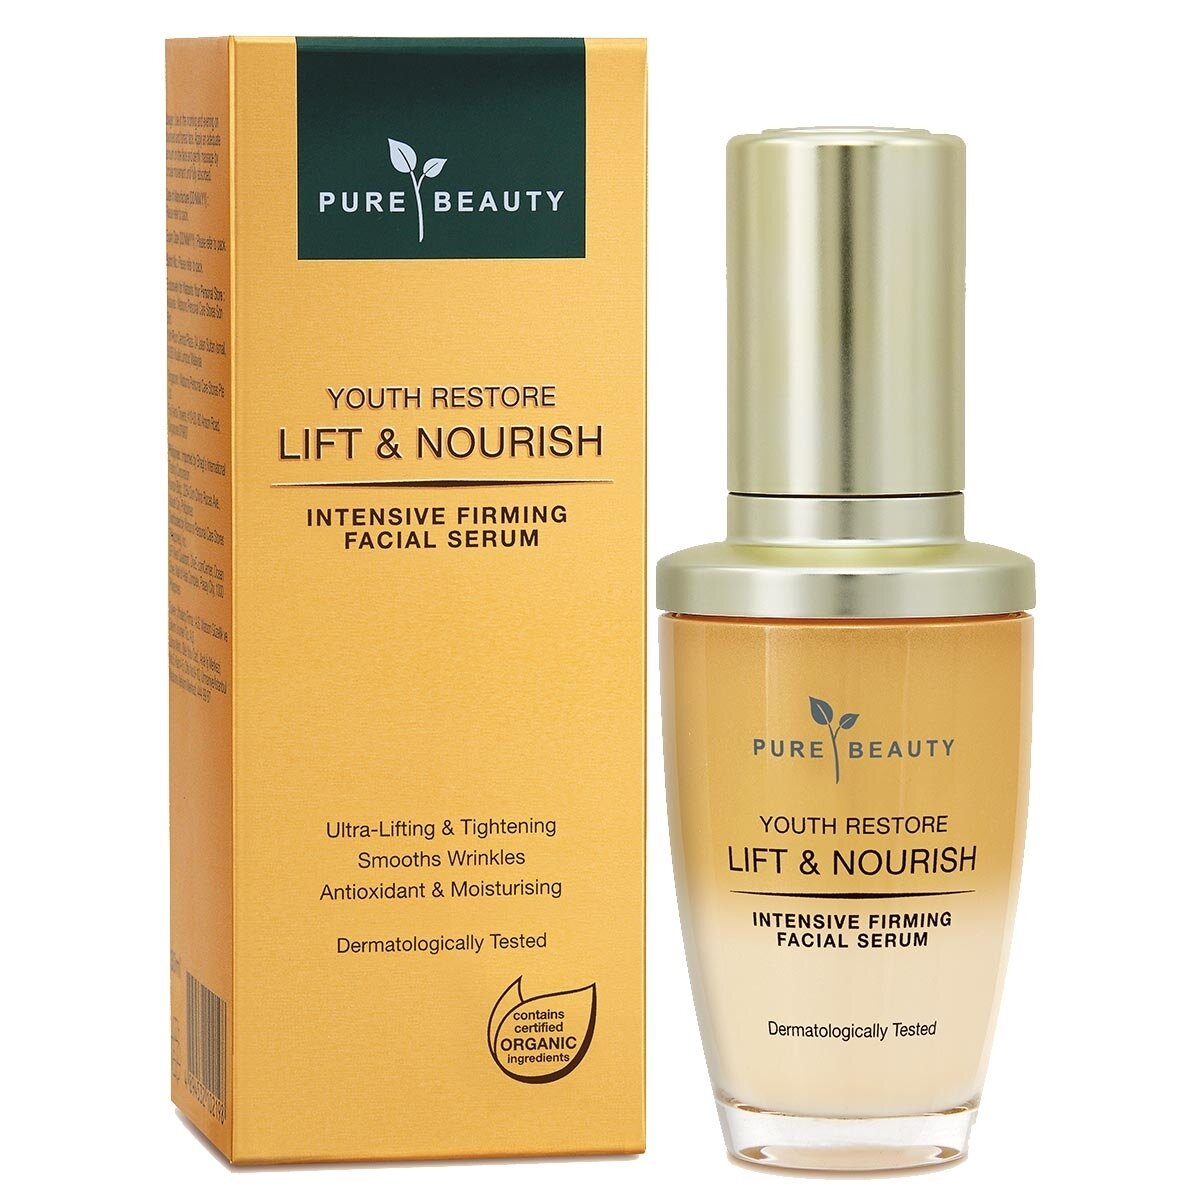 Youth Restore Firming Face Serum 30 ml